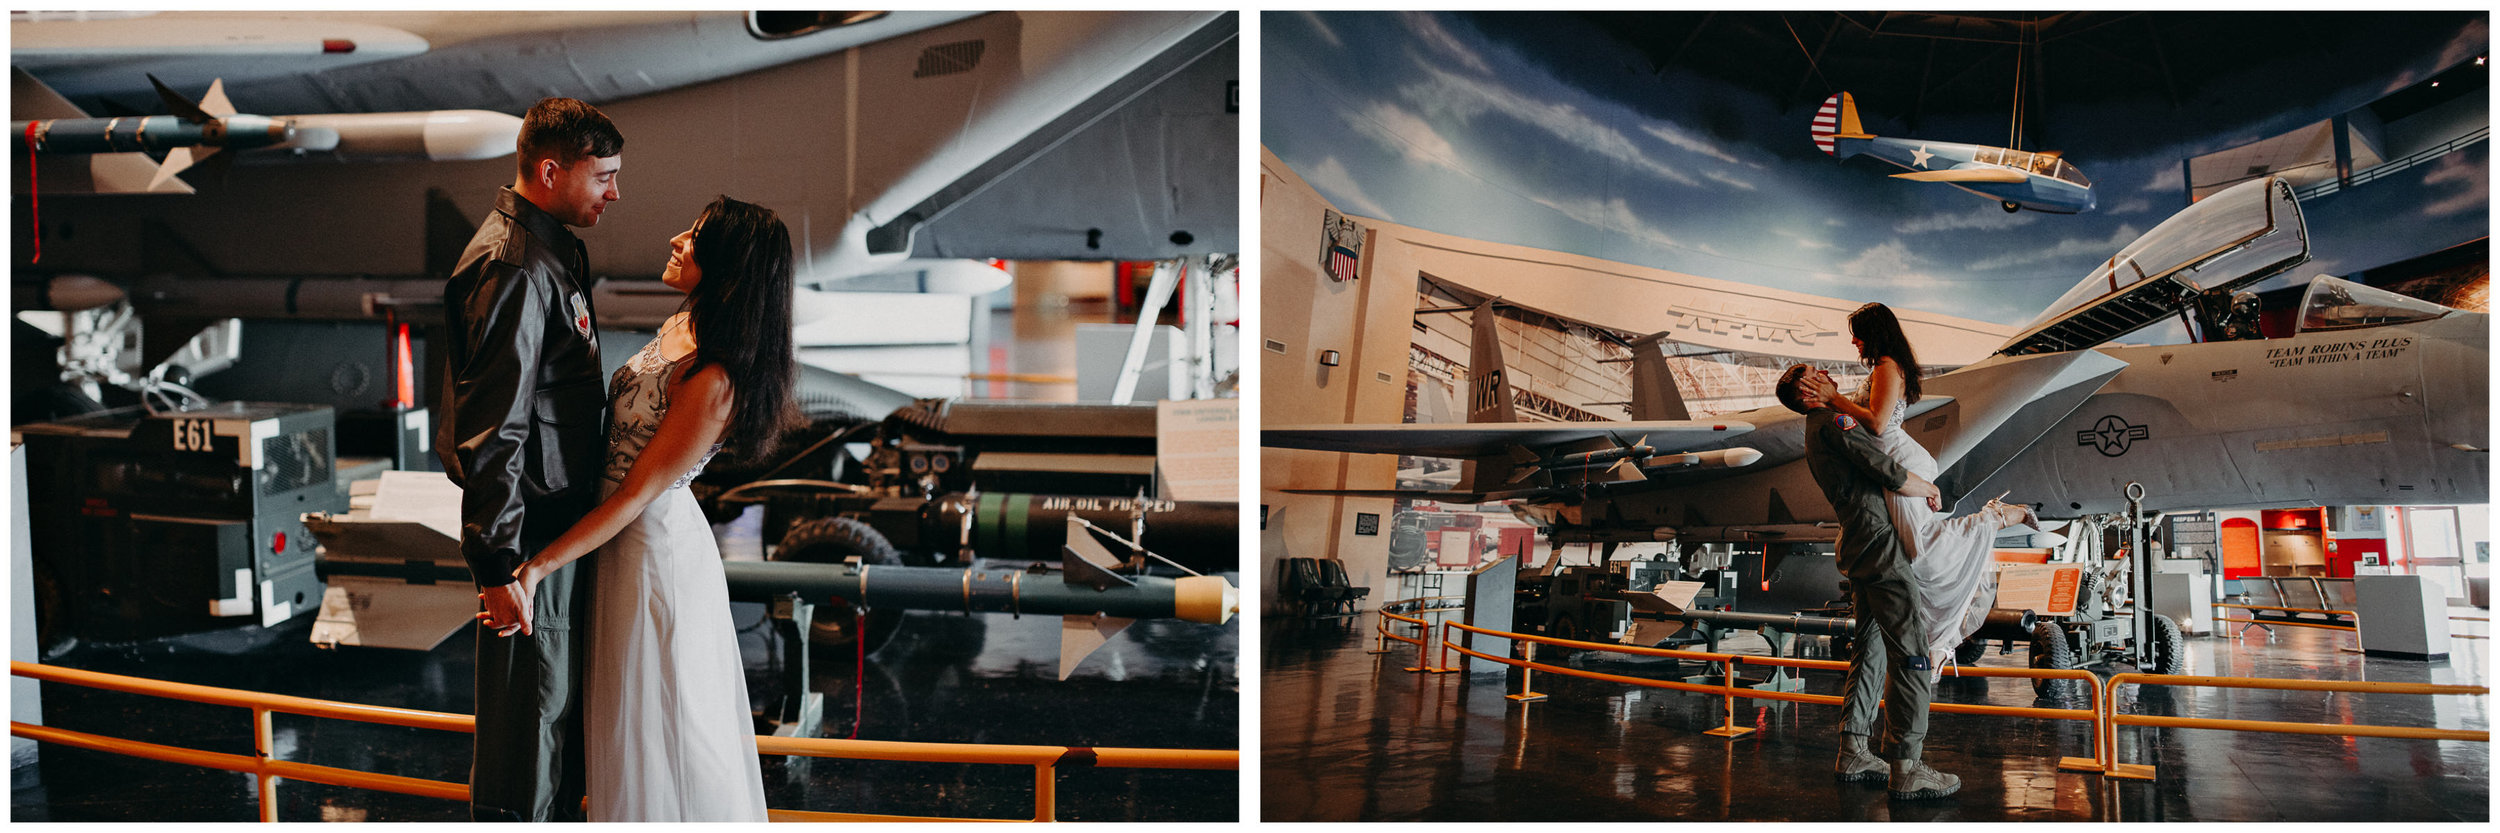 4 Museum of aviation engagement shoot - preview - Aline Marin Atlanta Photographer .jpg